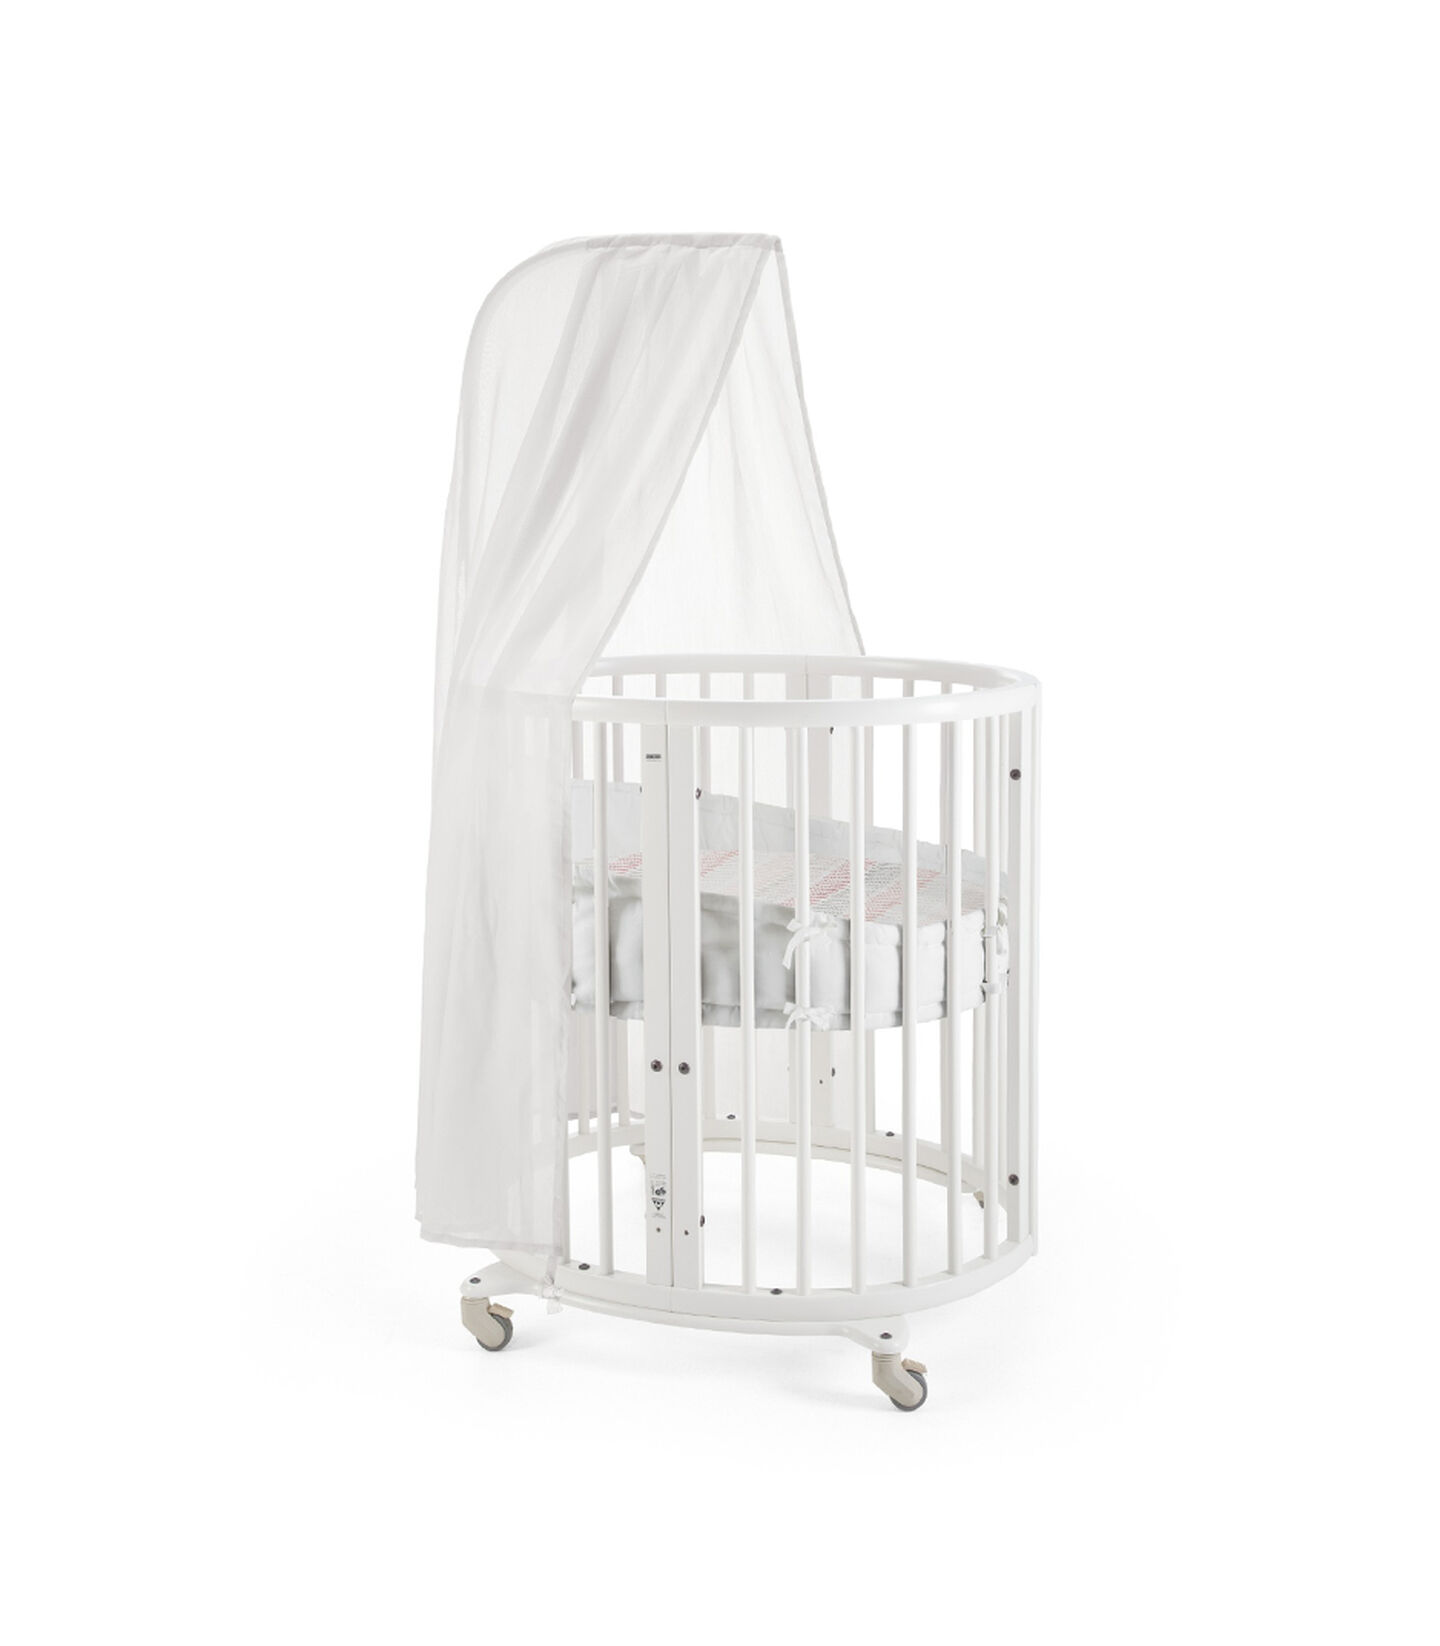 Stokke® Sleepi™ Sengehimmel White, White, mainview view 2